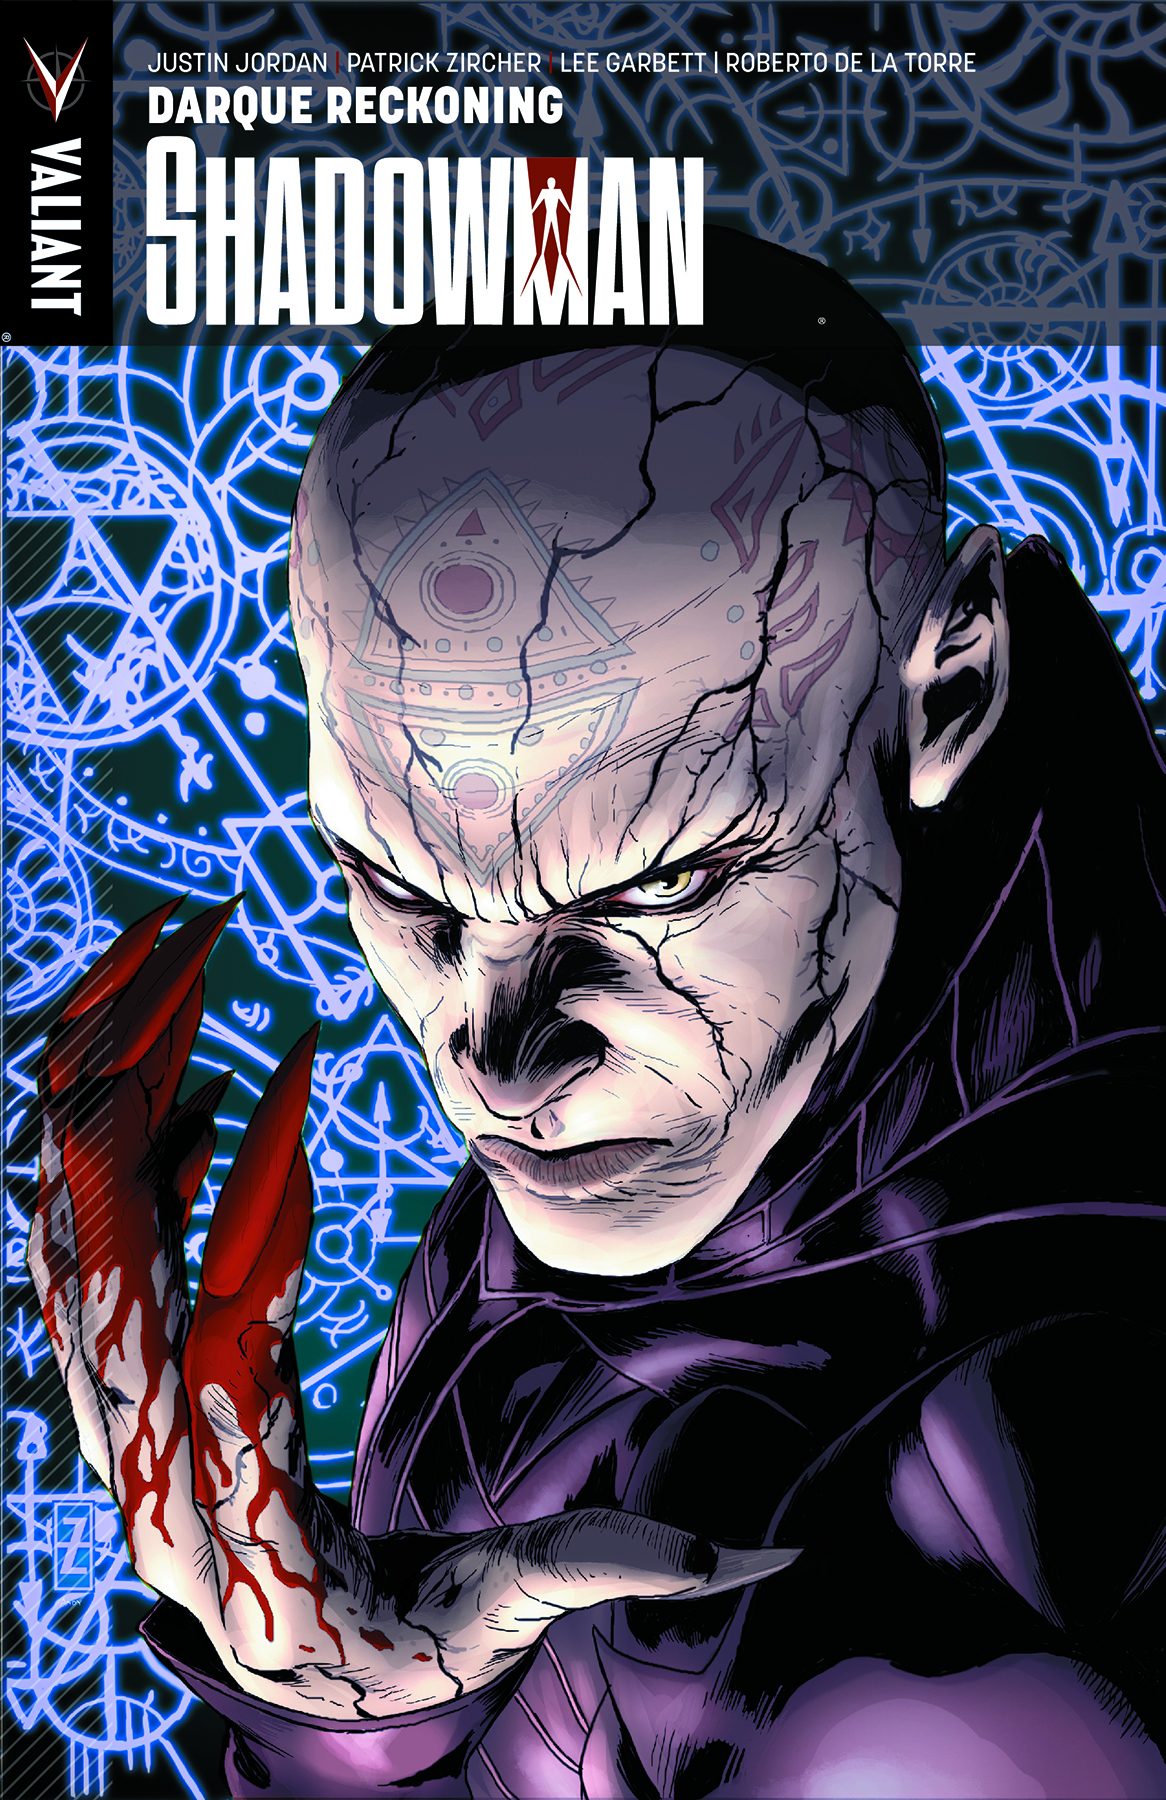 SHADOWMAN TP VOL 02 DARQUE RECKONING